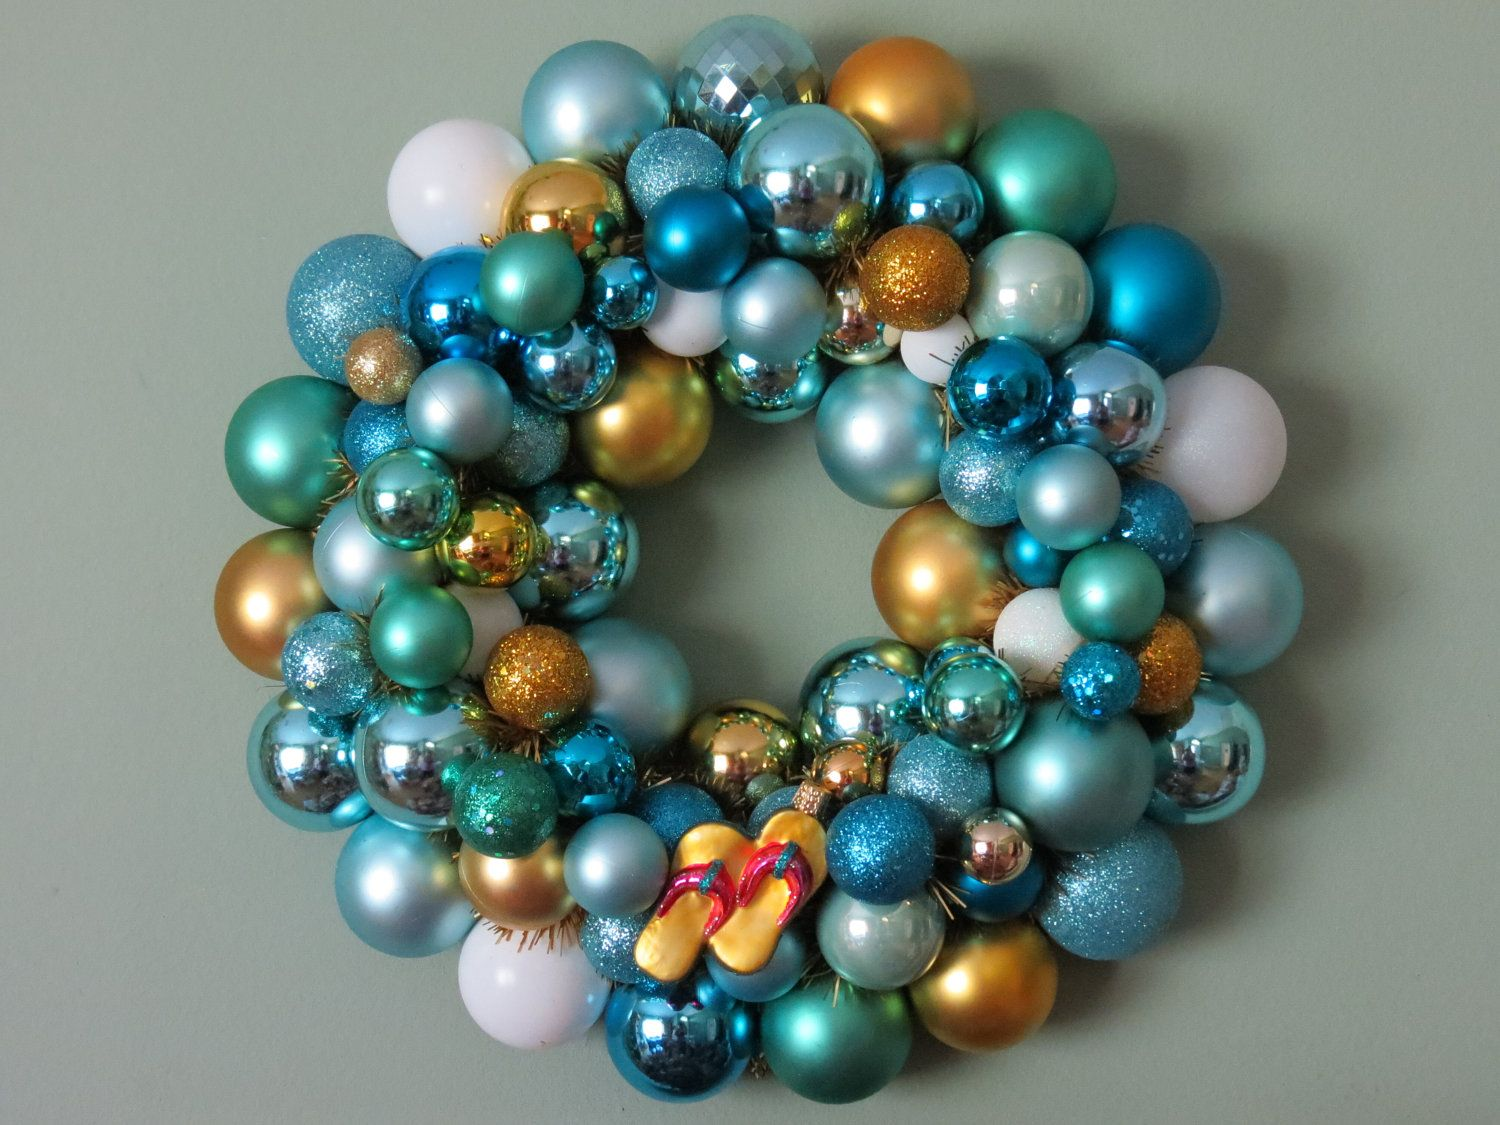 UNCW- Ornament Wreath, or some variation of this